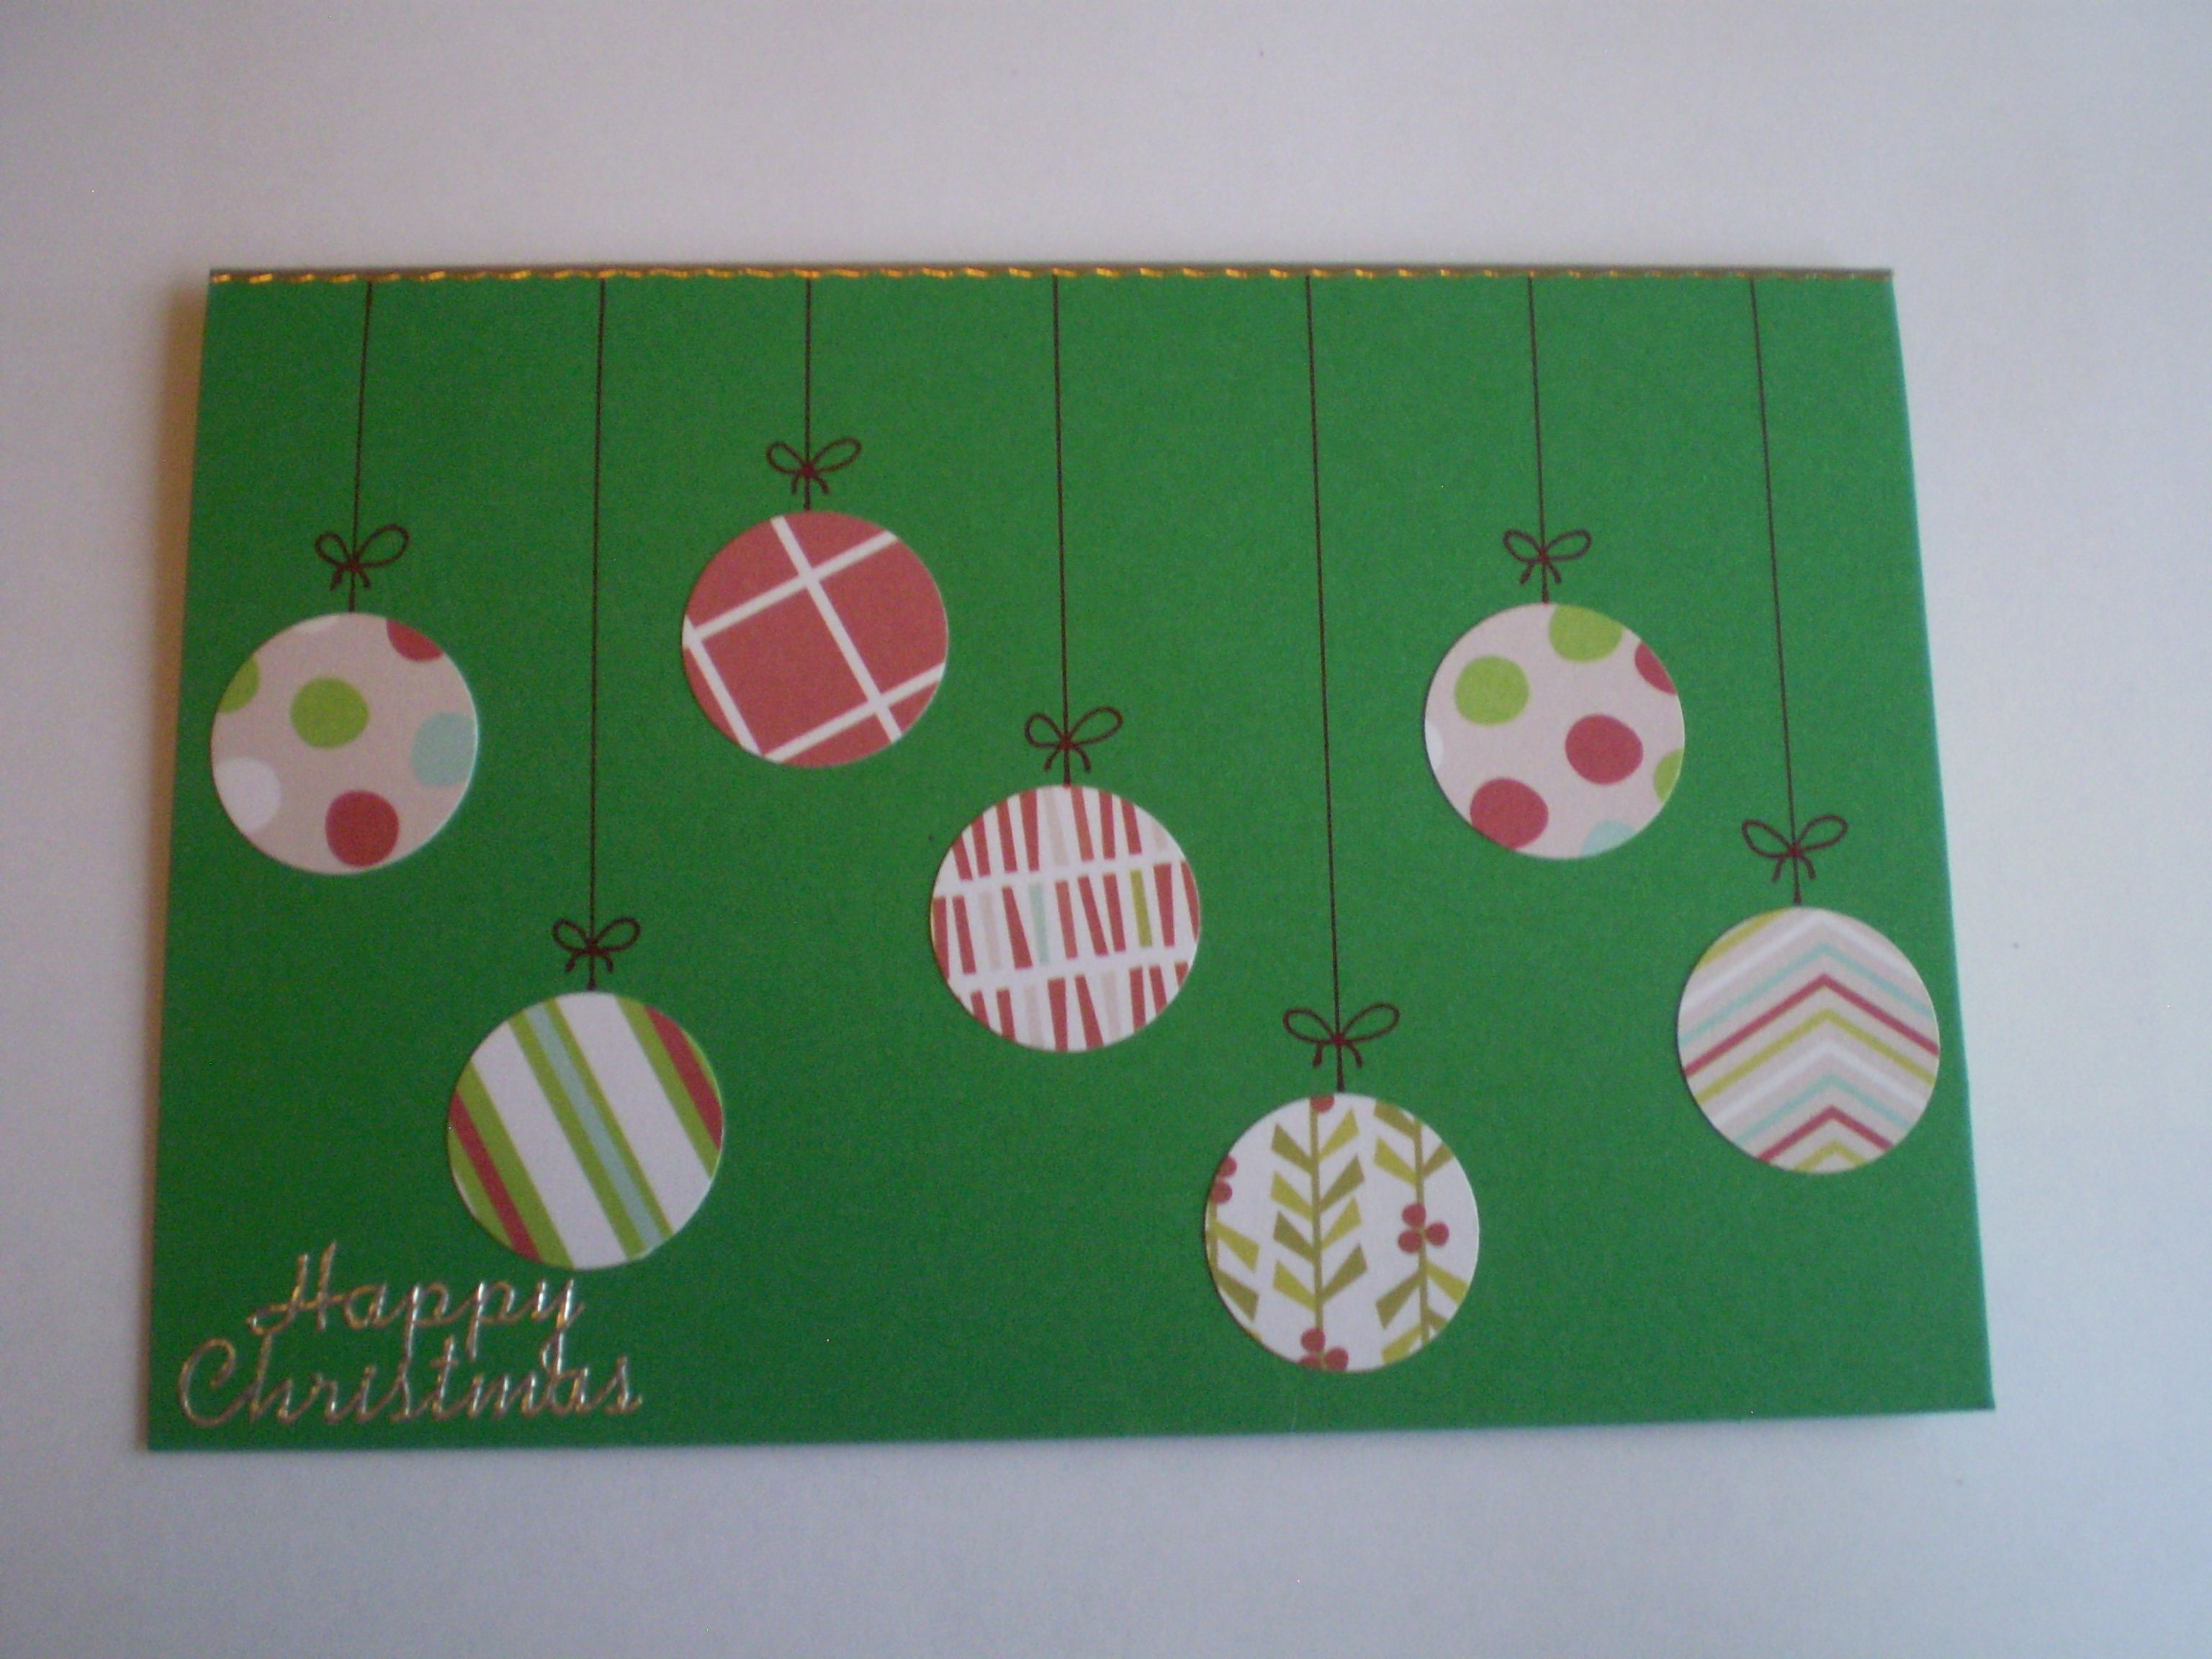 Diy christmas card designs green line of baubles on string cut diy christmas card designs green line of baubles on string cut using solutioingenieria Images